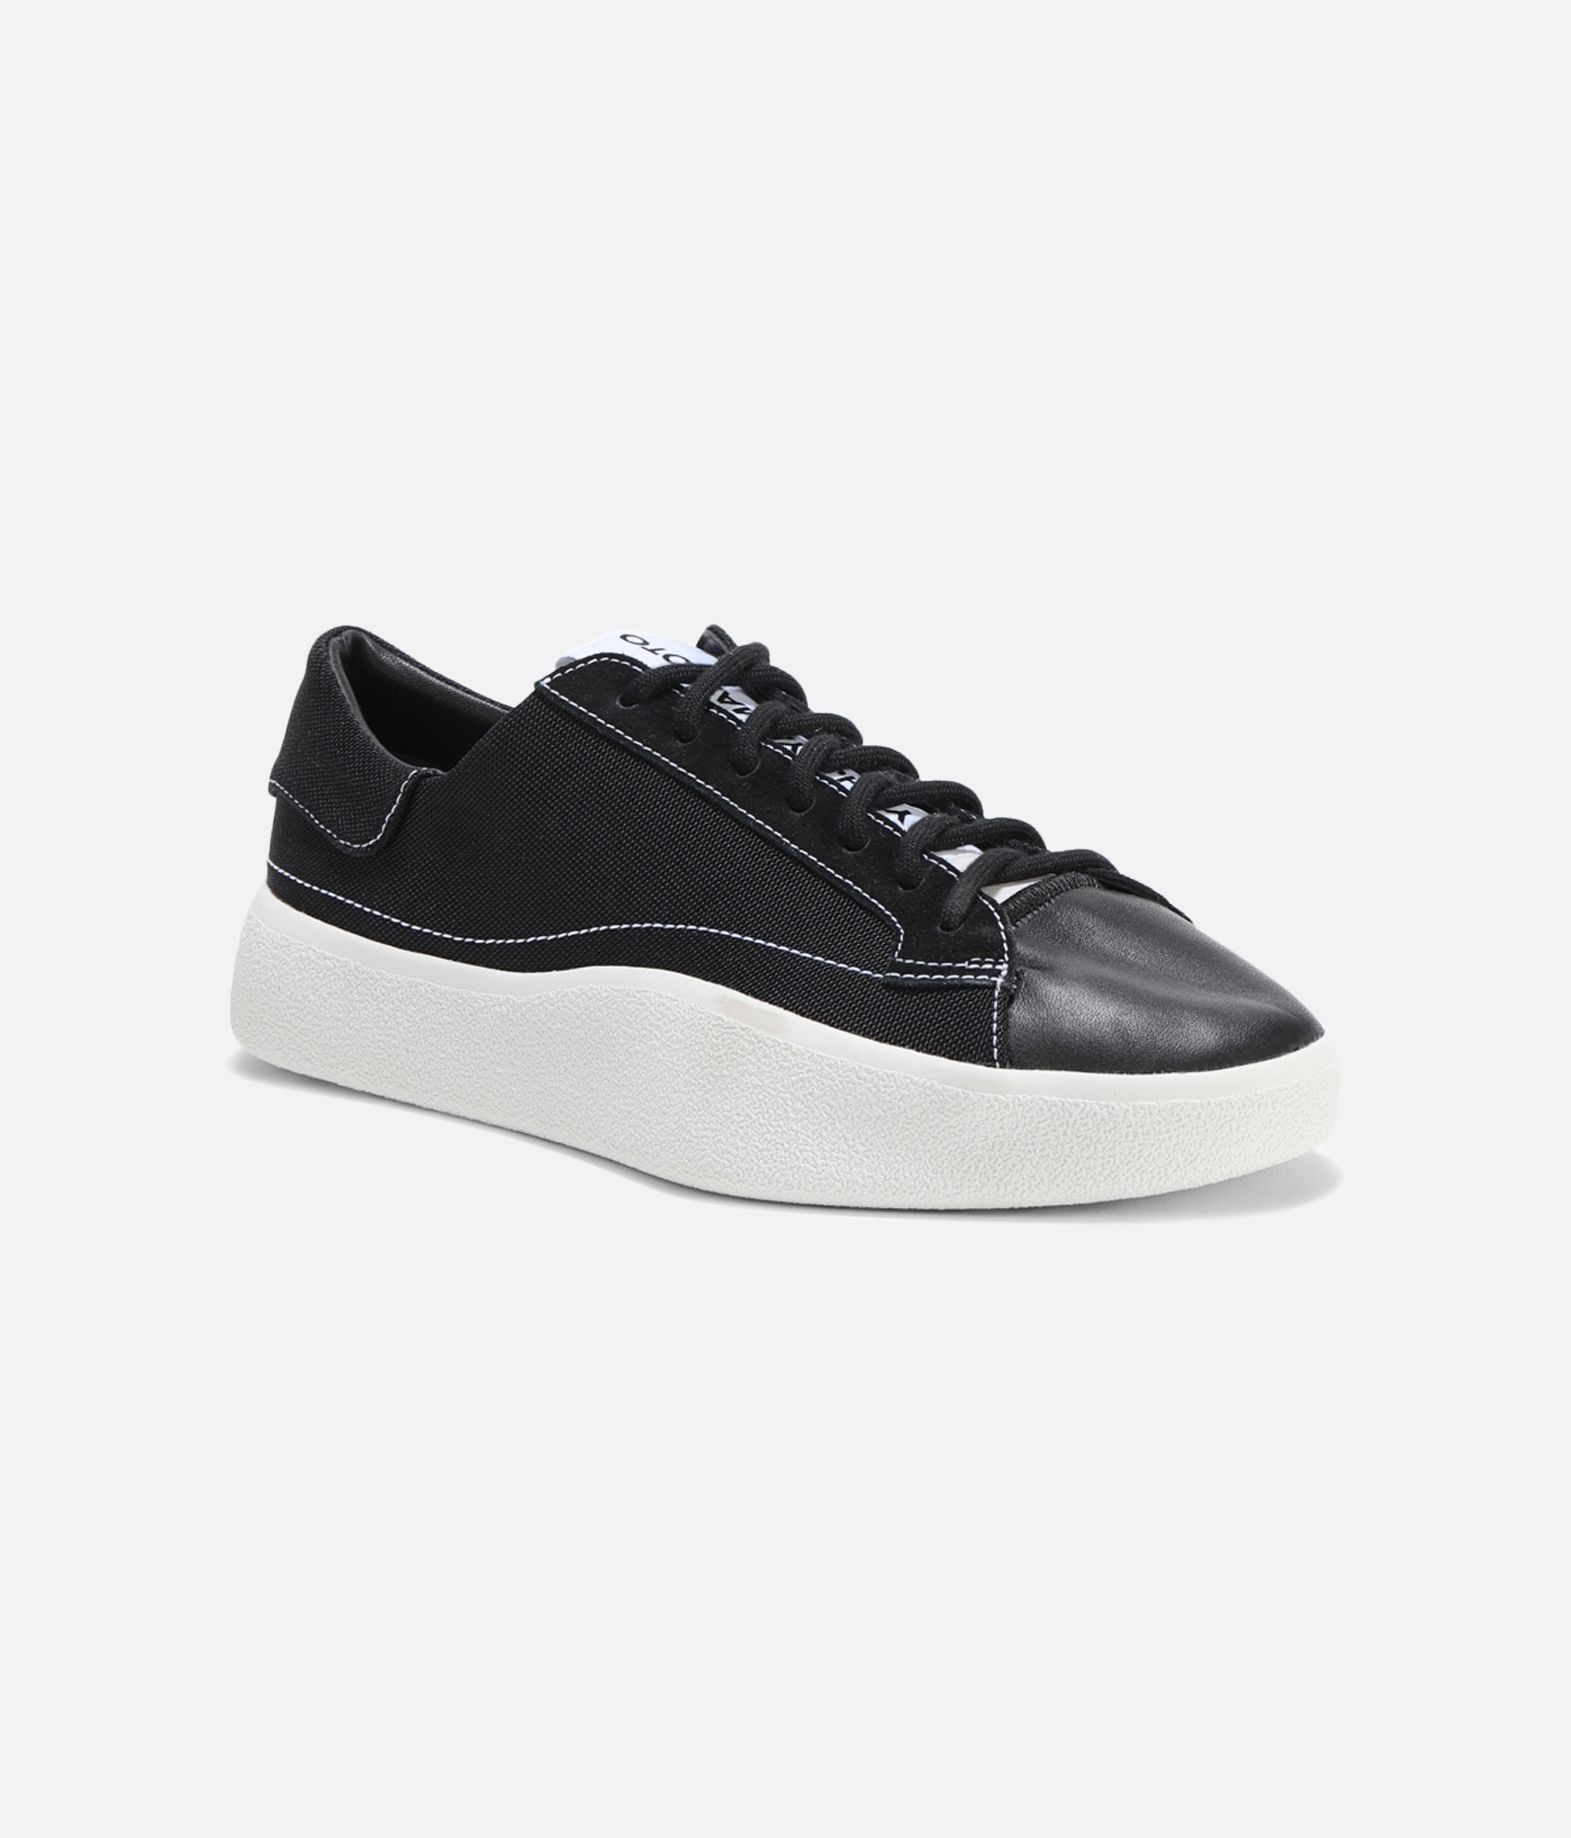 Y-3 Y-3 Tangutsu Lace Dress shoes E e